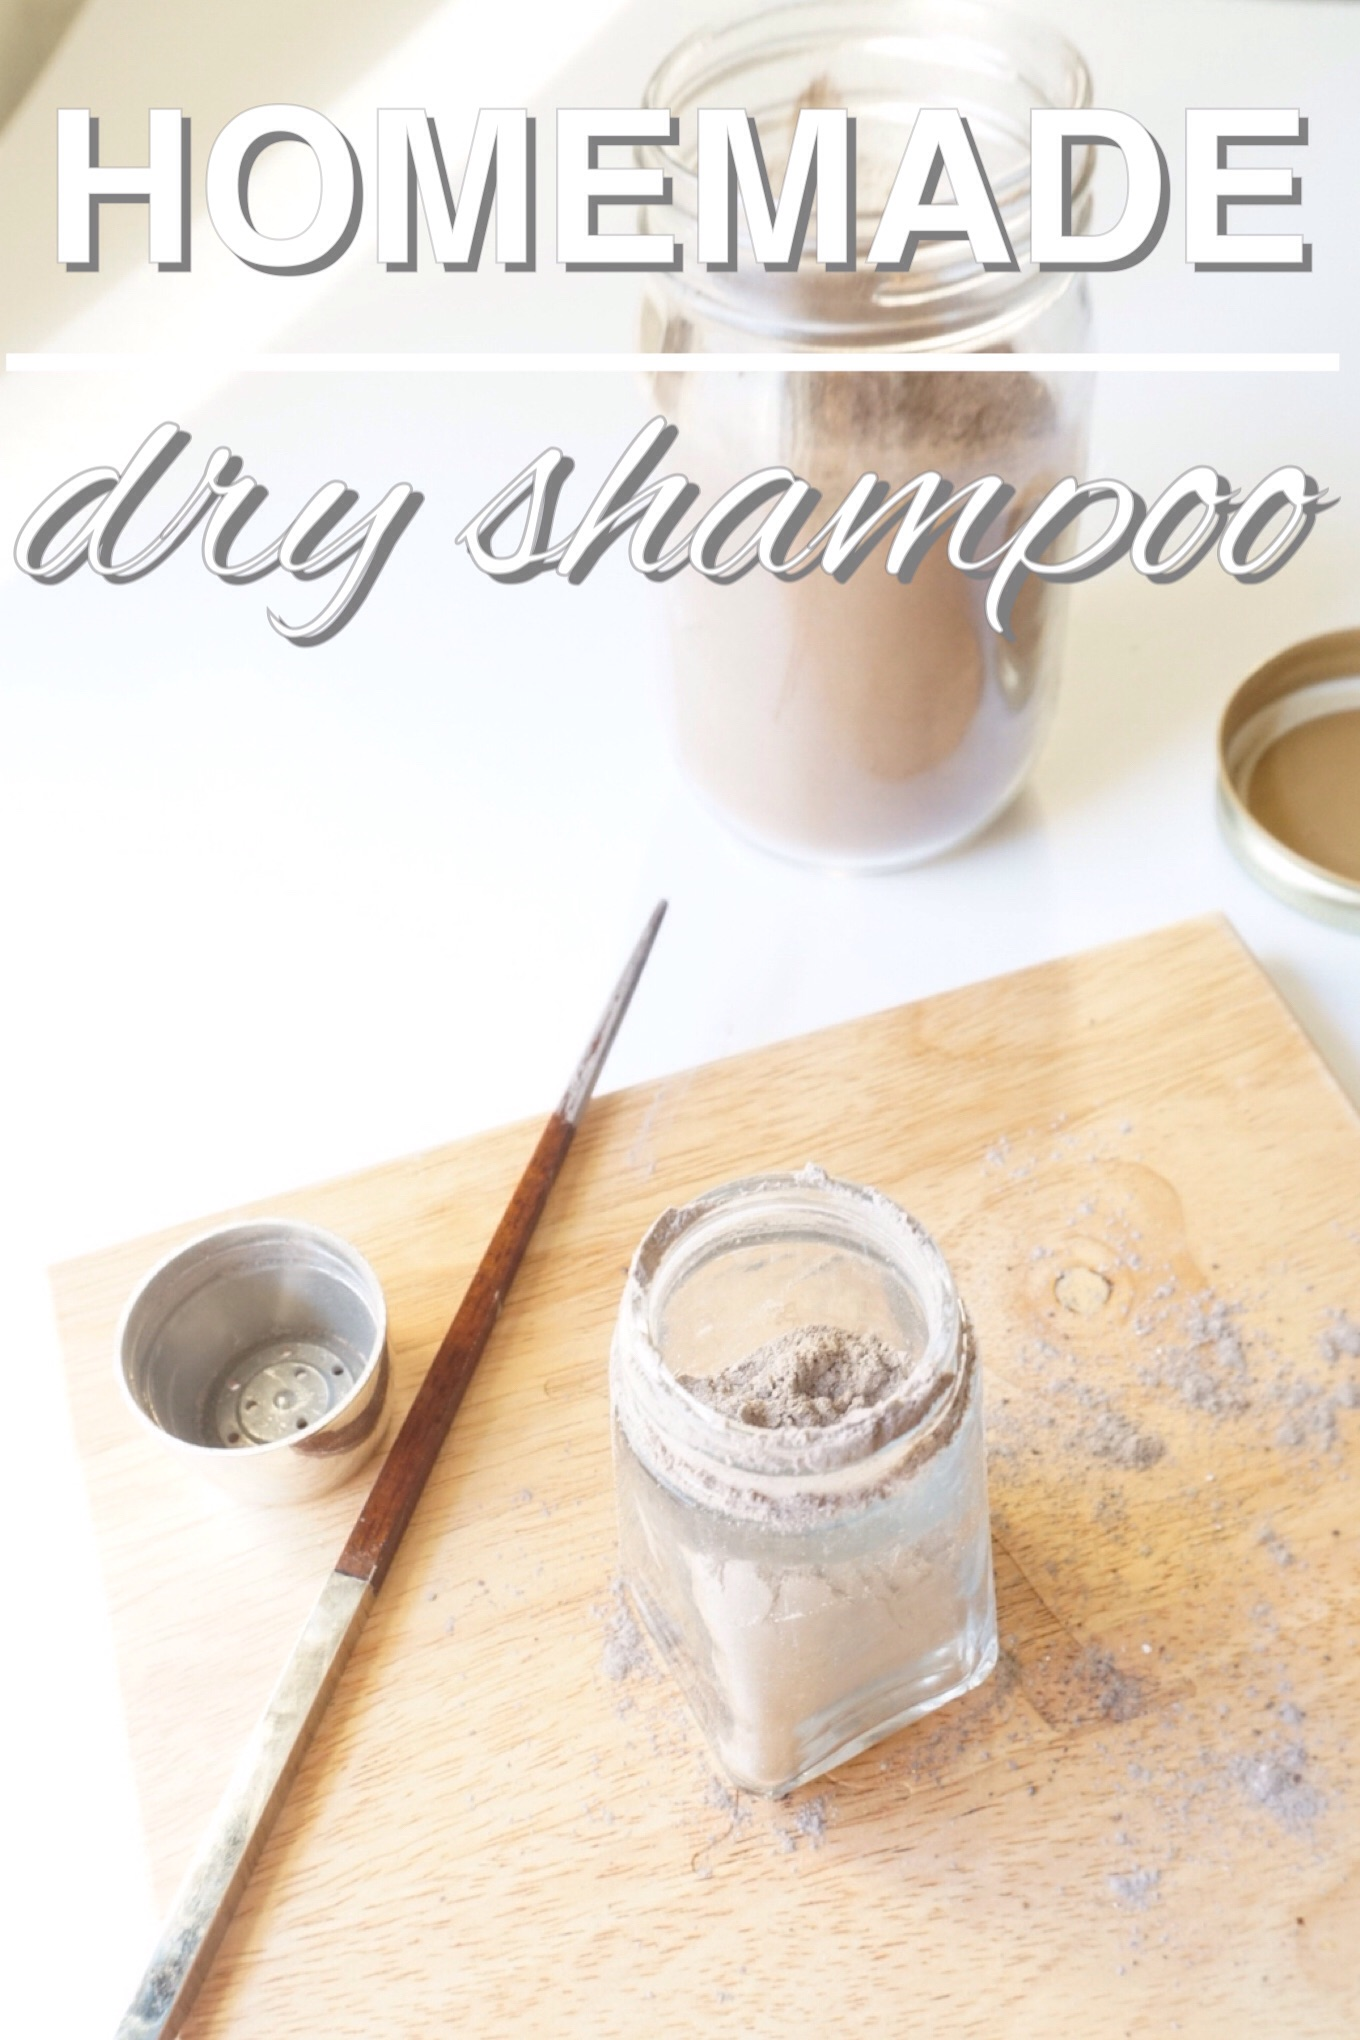 Homemade, zero waste dry shampoo to keep your locks looking life like between showers. Try out this new diy with www.goingzerowaste.com